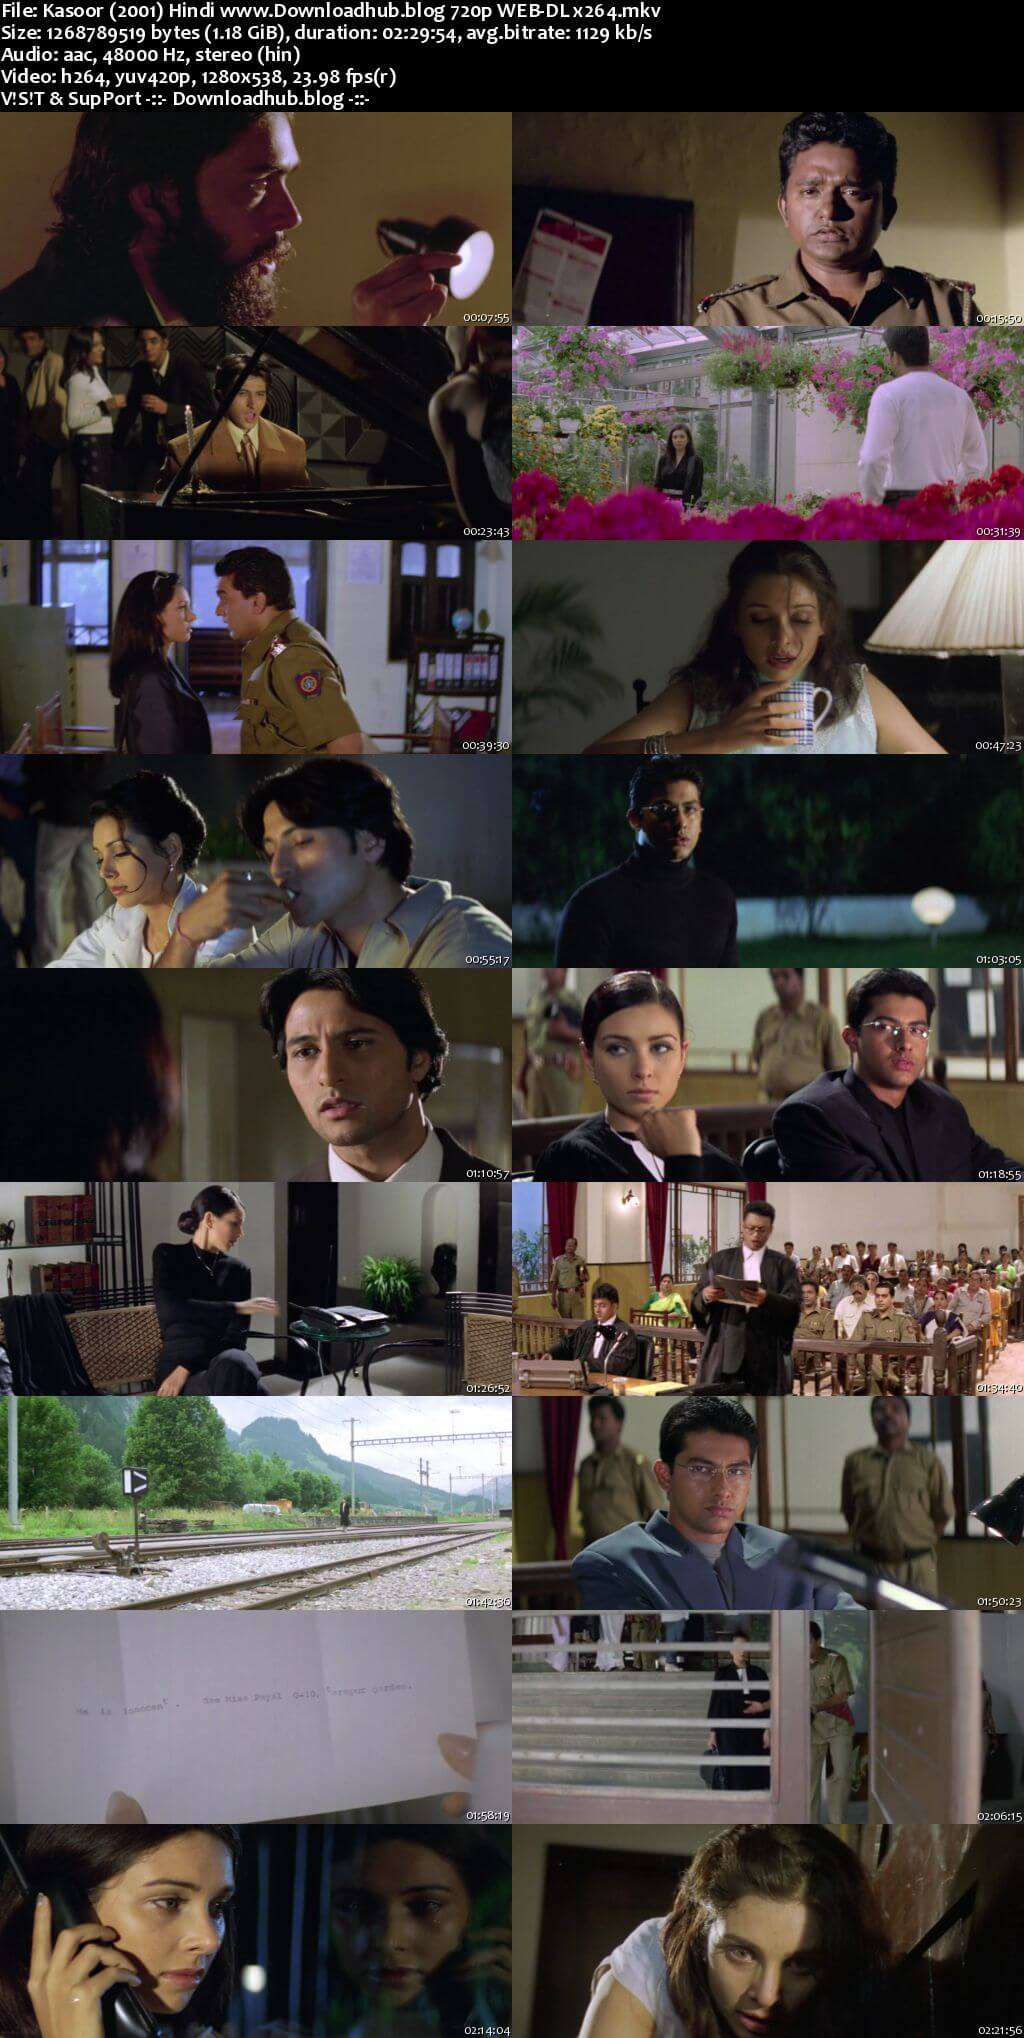 Kasoor 2001 Hindi 720p HDRip x264